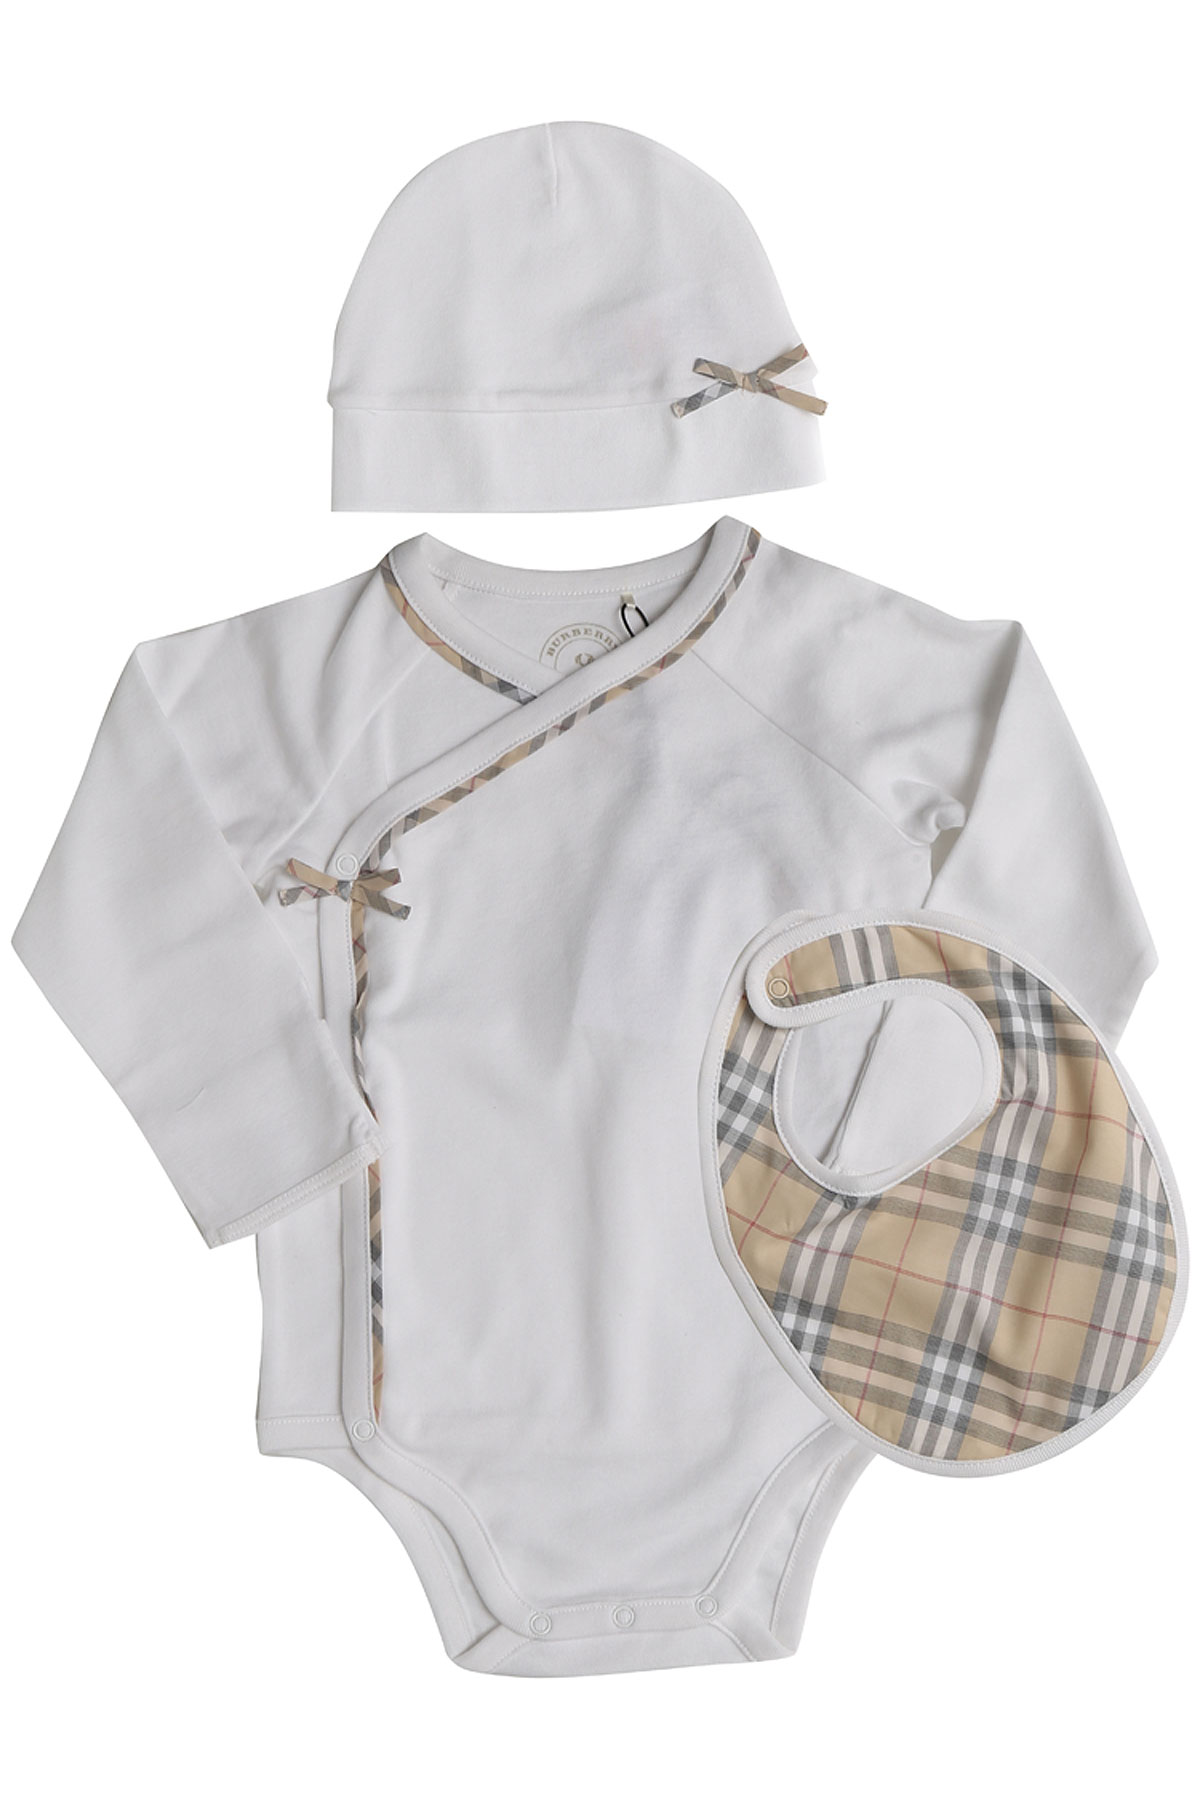 Image of Burberry Baby Sets for Girls, White, Cotton, 2017, 3M 6M